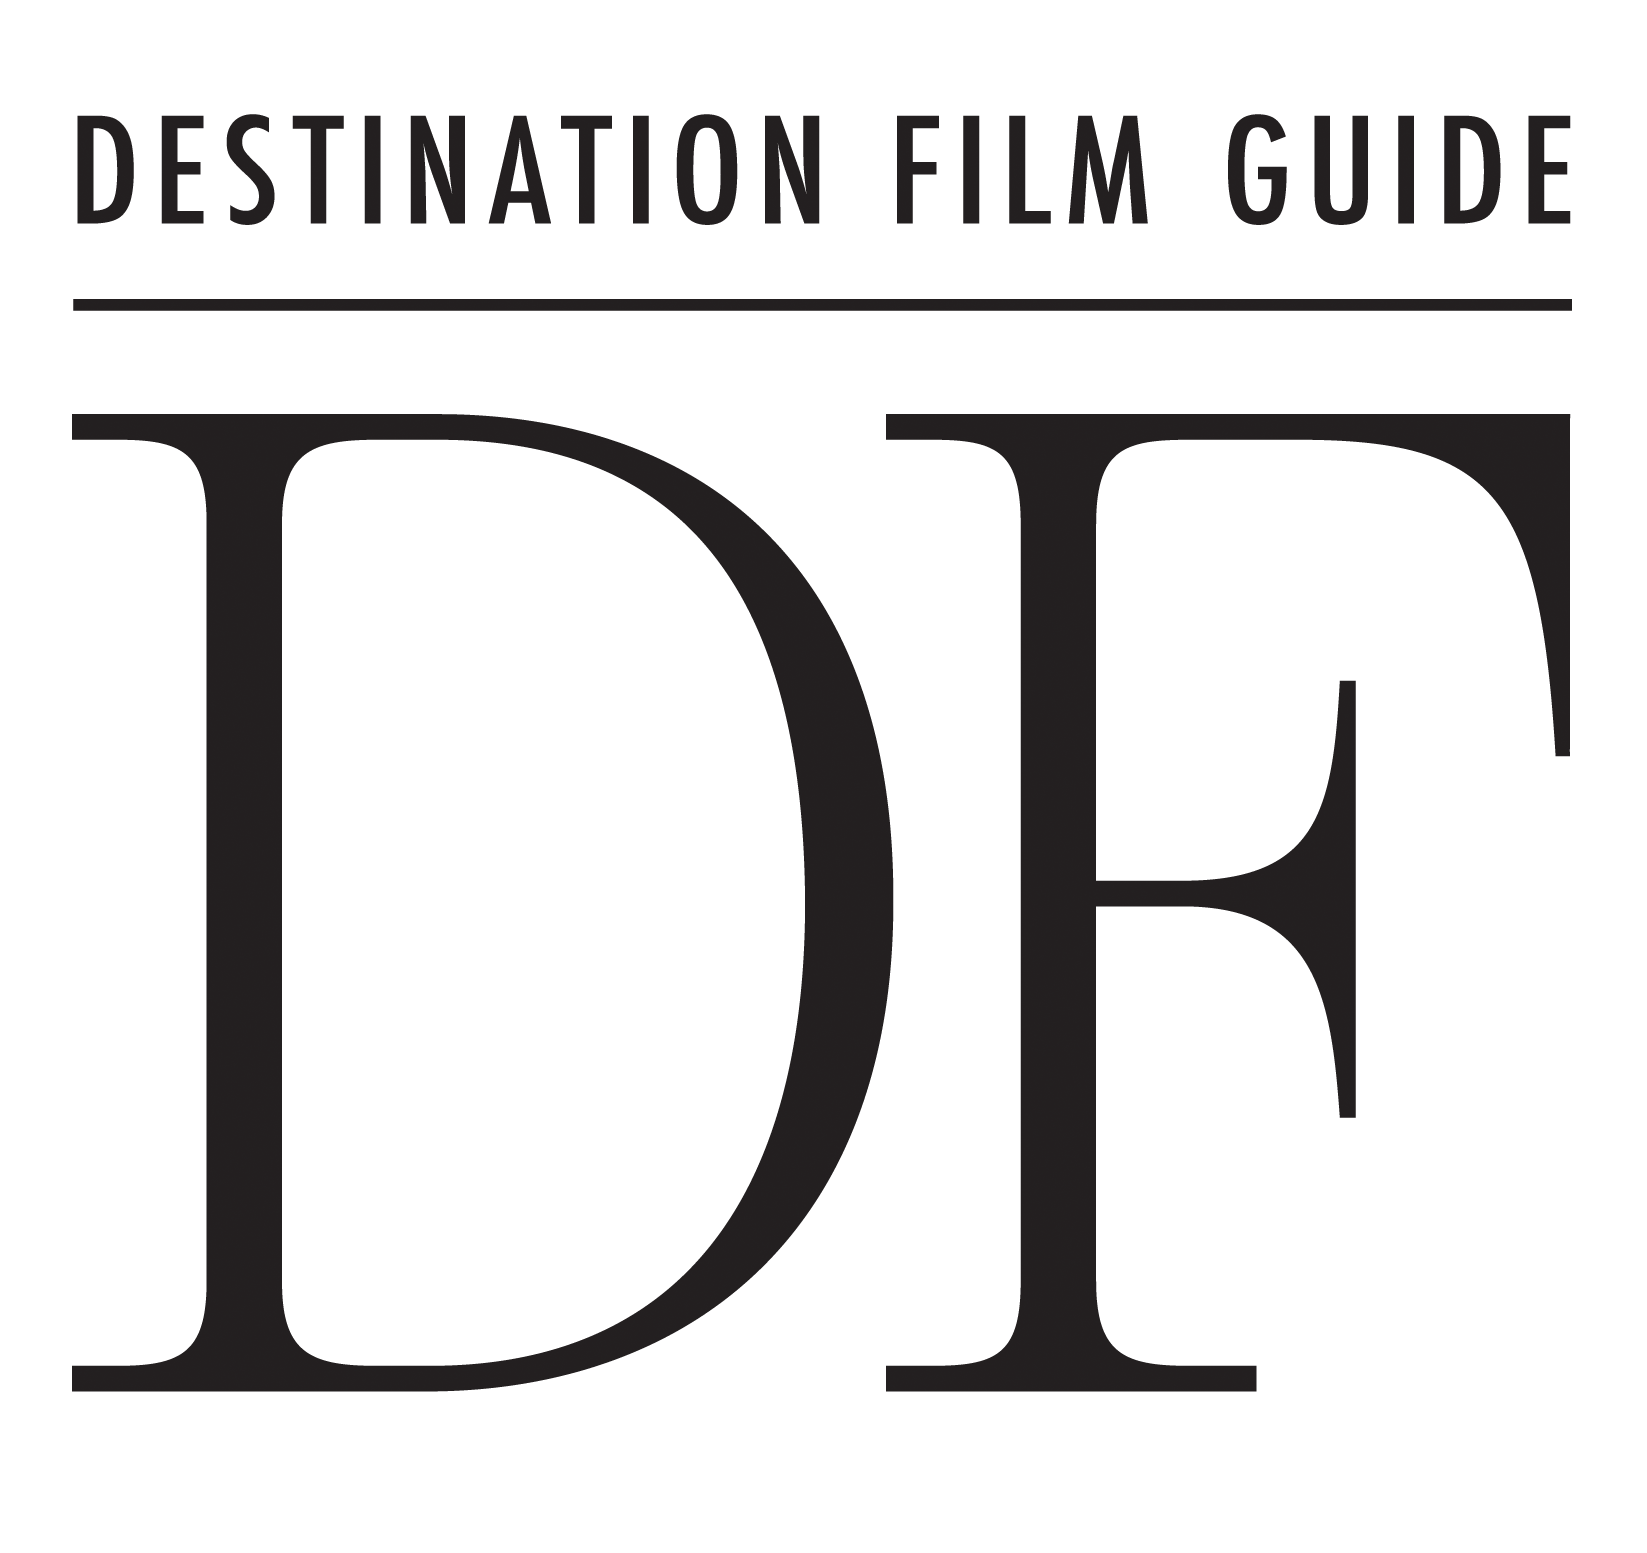 Destination Film Guide